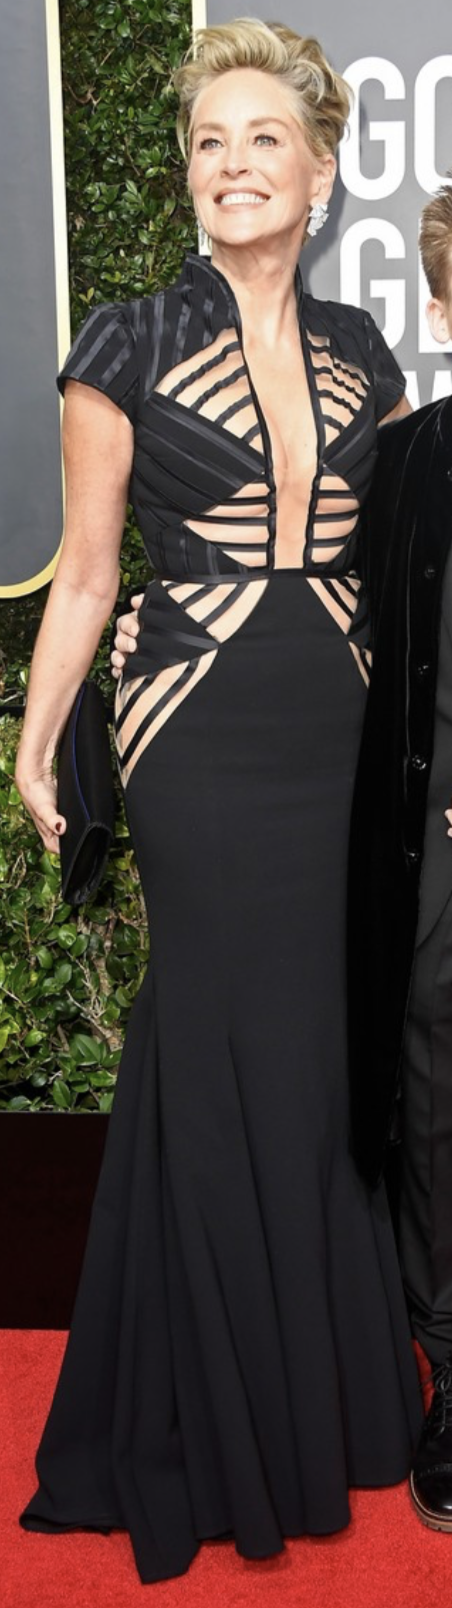 Sharon Stone - Golden Globes 2018